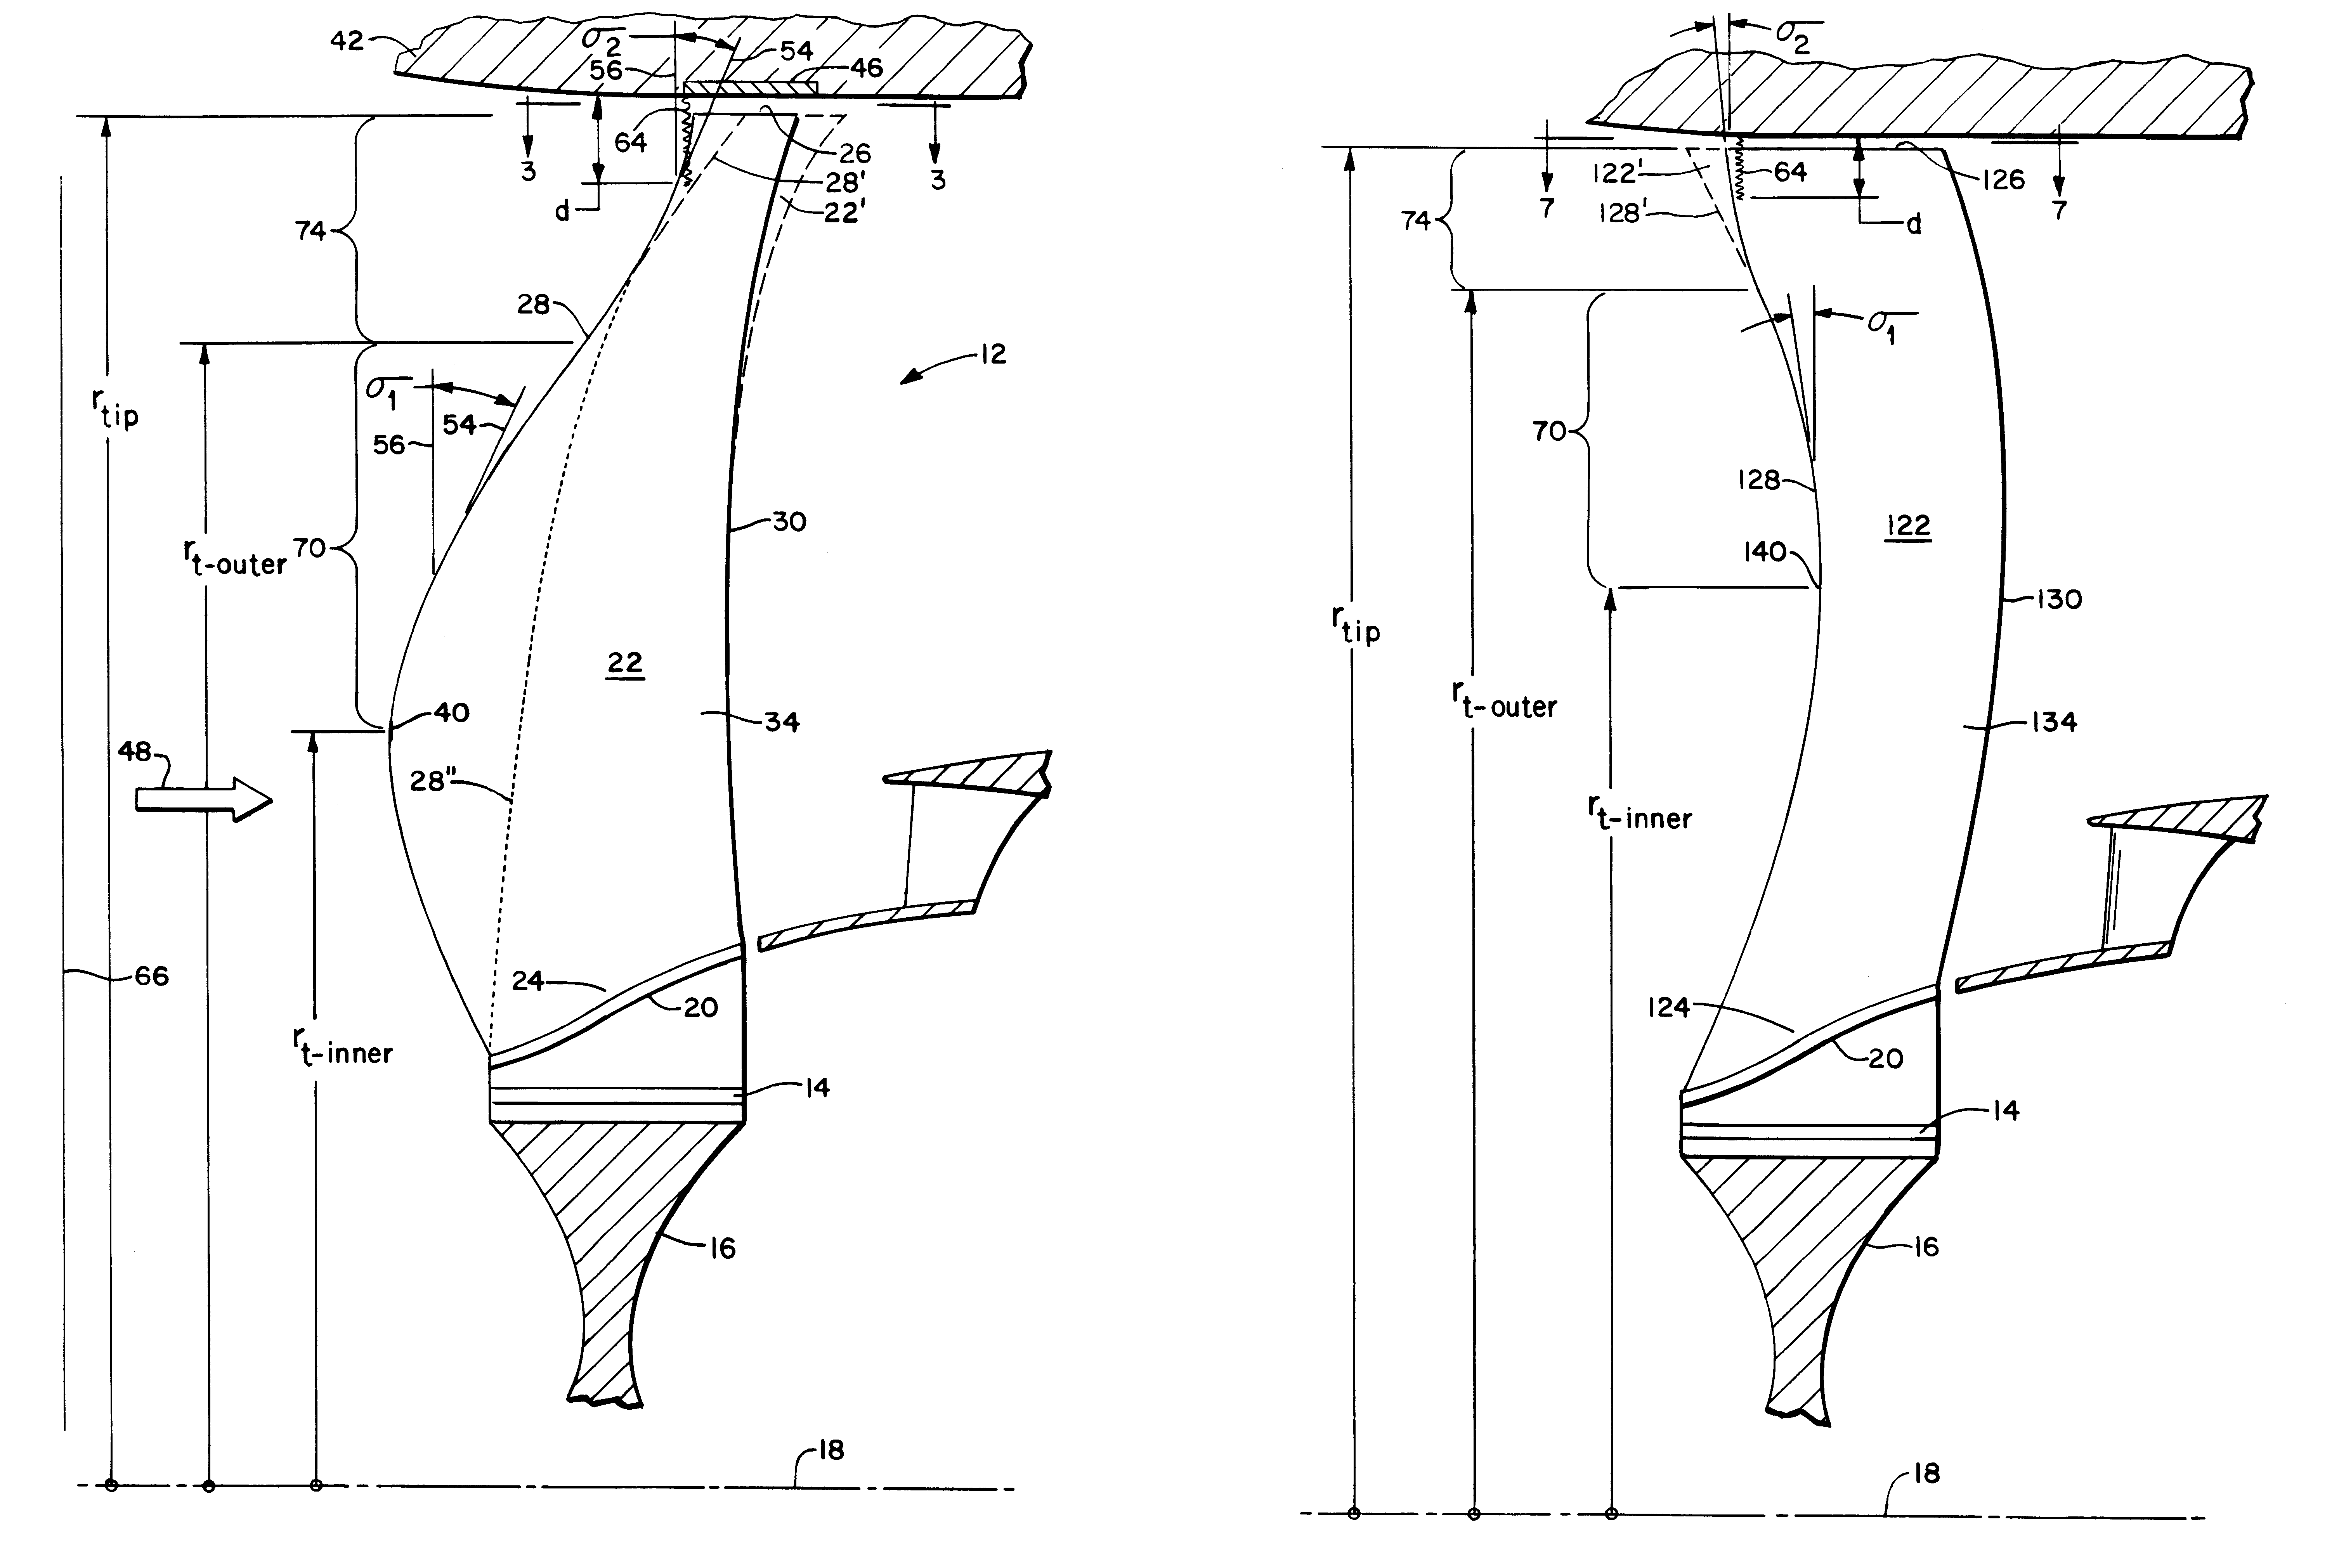 Fan Blade Drawing : Patent usre swept turbomachinery blade google patents